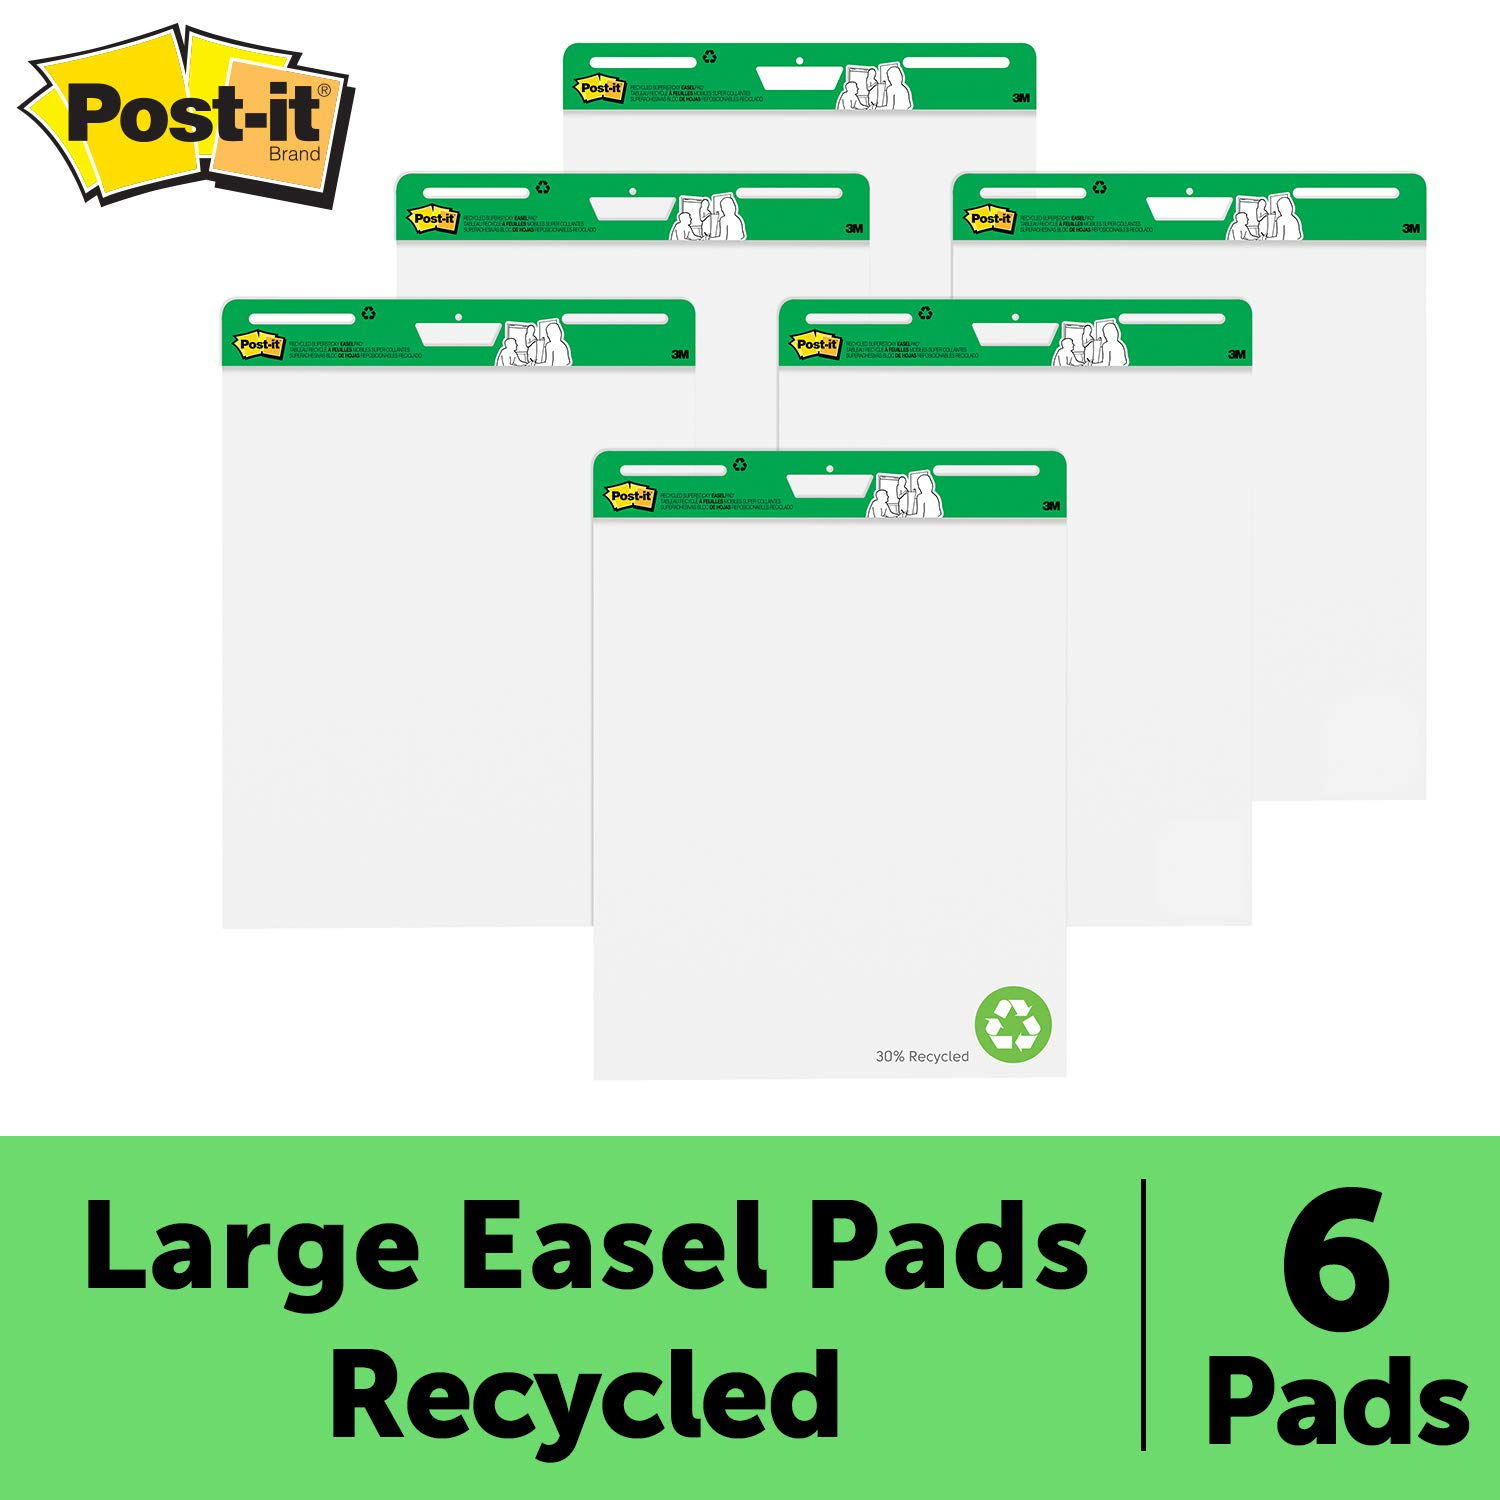 Post-it Super Sticky Easel Pad, 25 x 30 Inches, 30 Sheets/Pad, 6 Pads (559RP-VAD6), Large White Recycled Premium Self Stick Flip Chart Paper, Super Sticking Power by Post-it